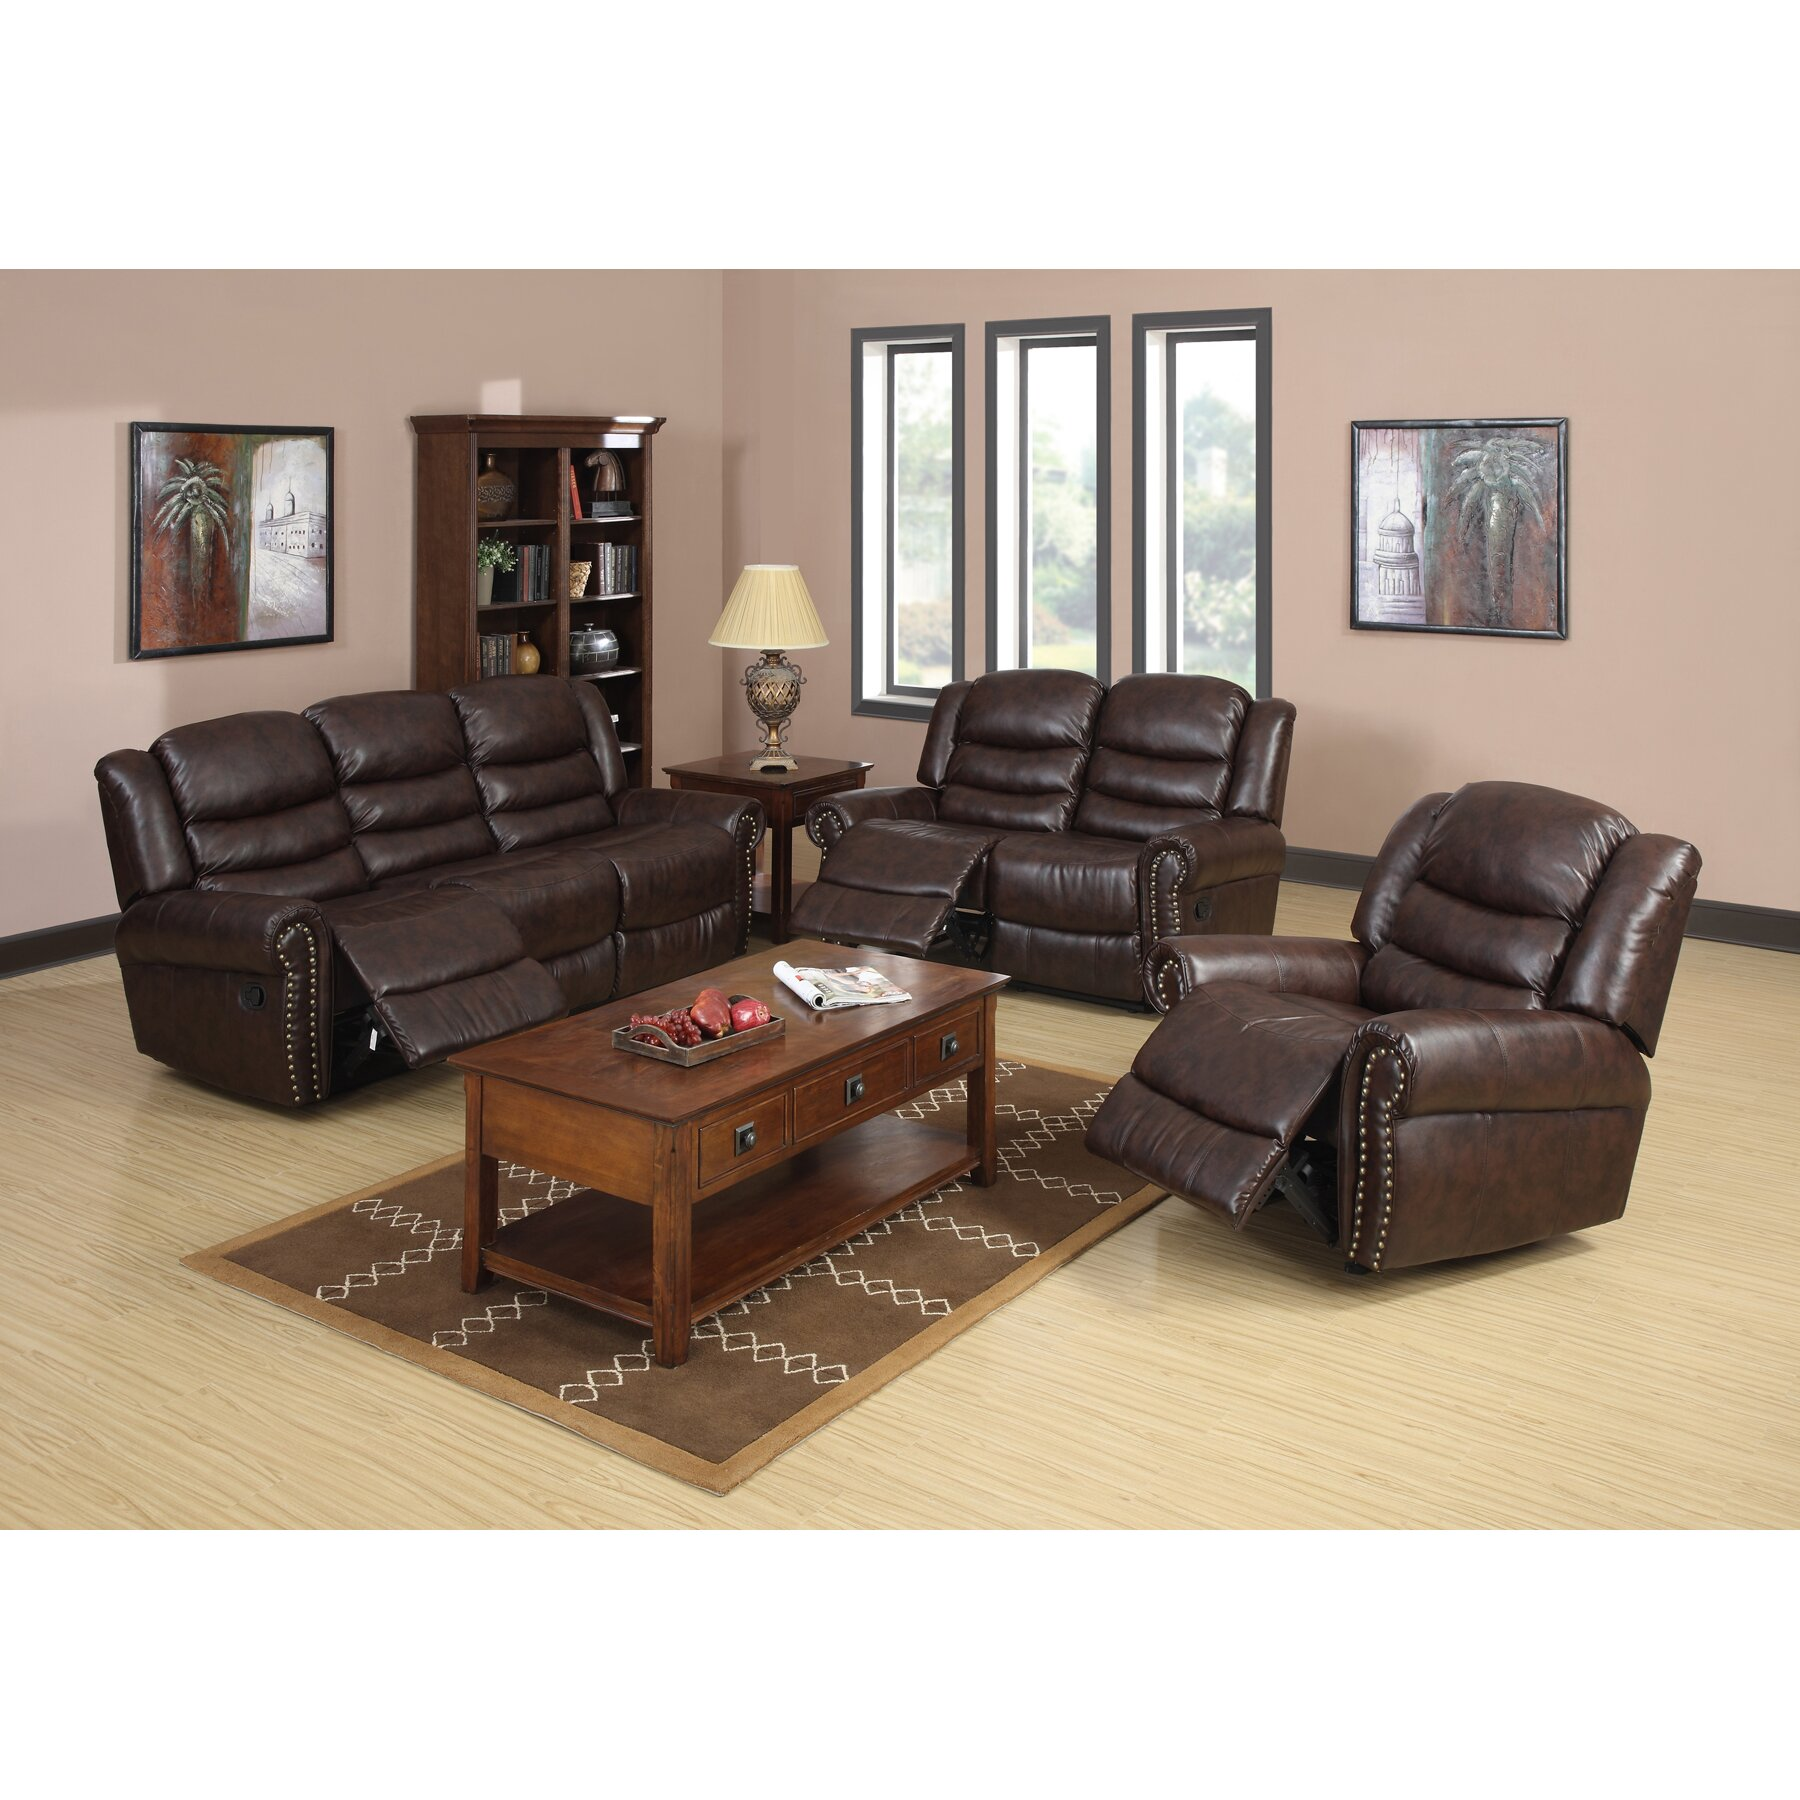 Living Room Collection Furniture Beverly Fine Furniture Wausau Living Room Collection Reviews